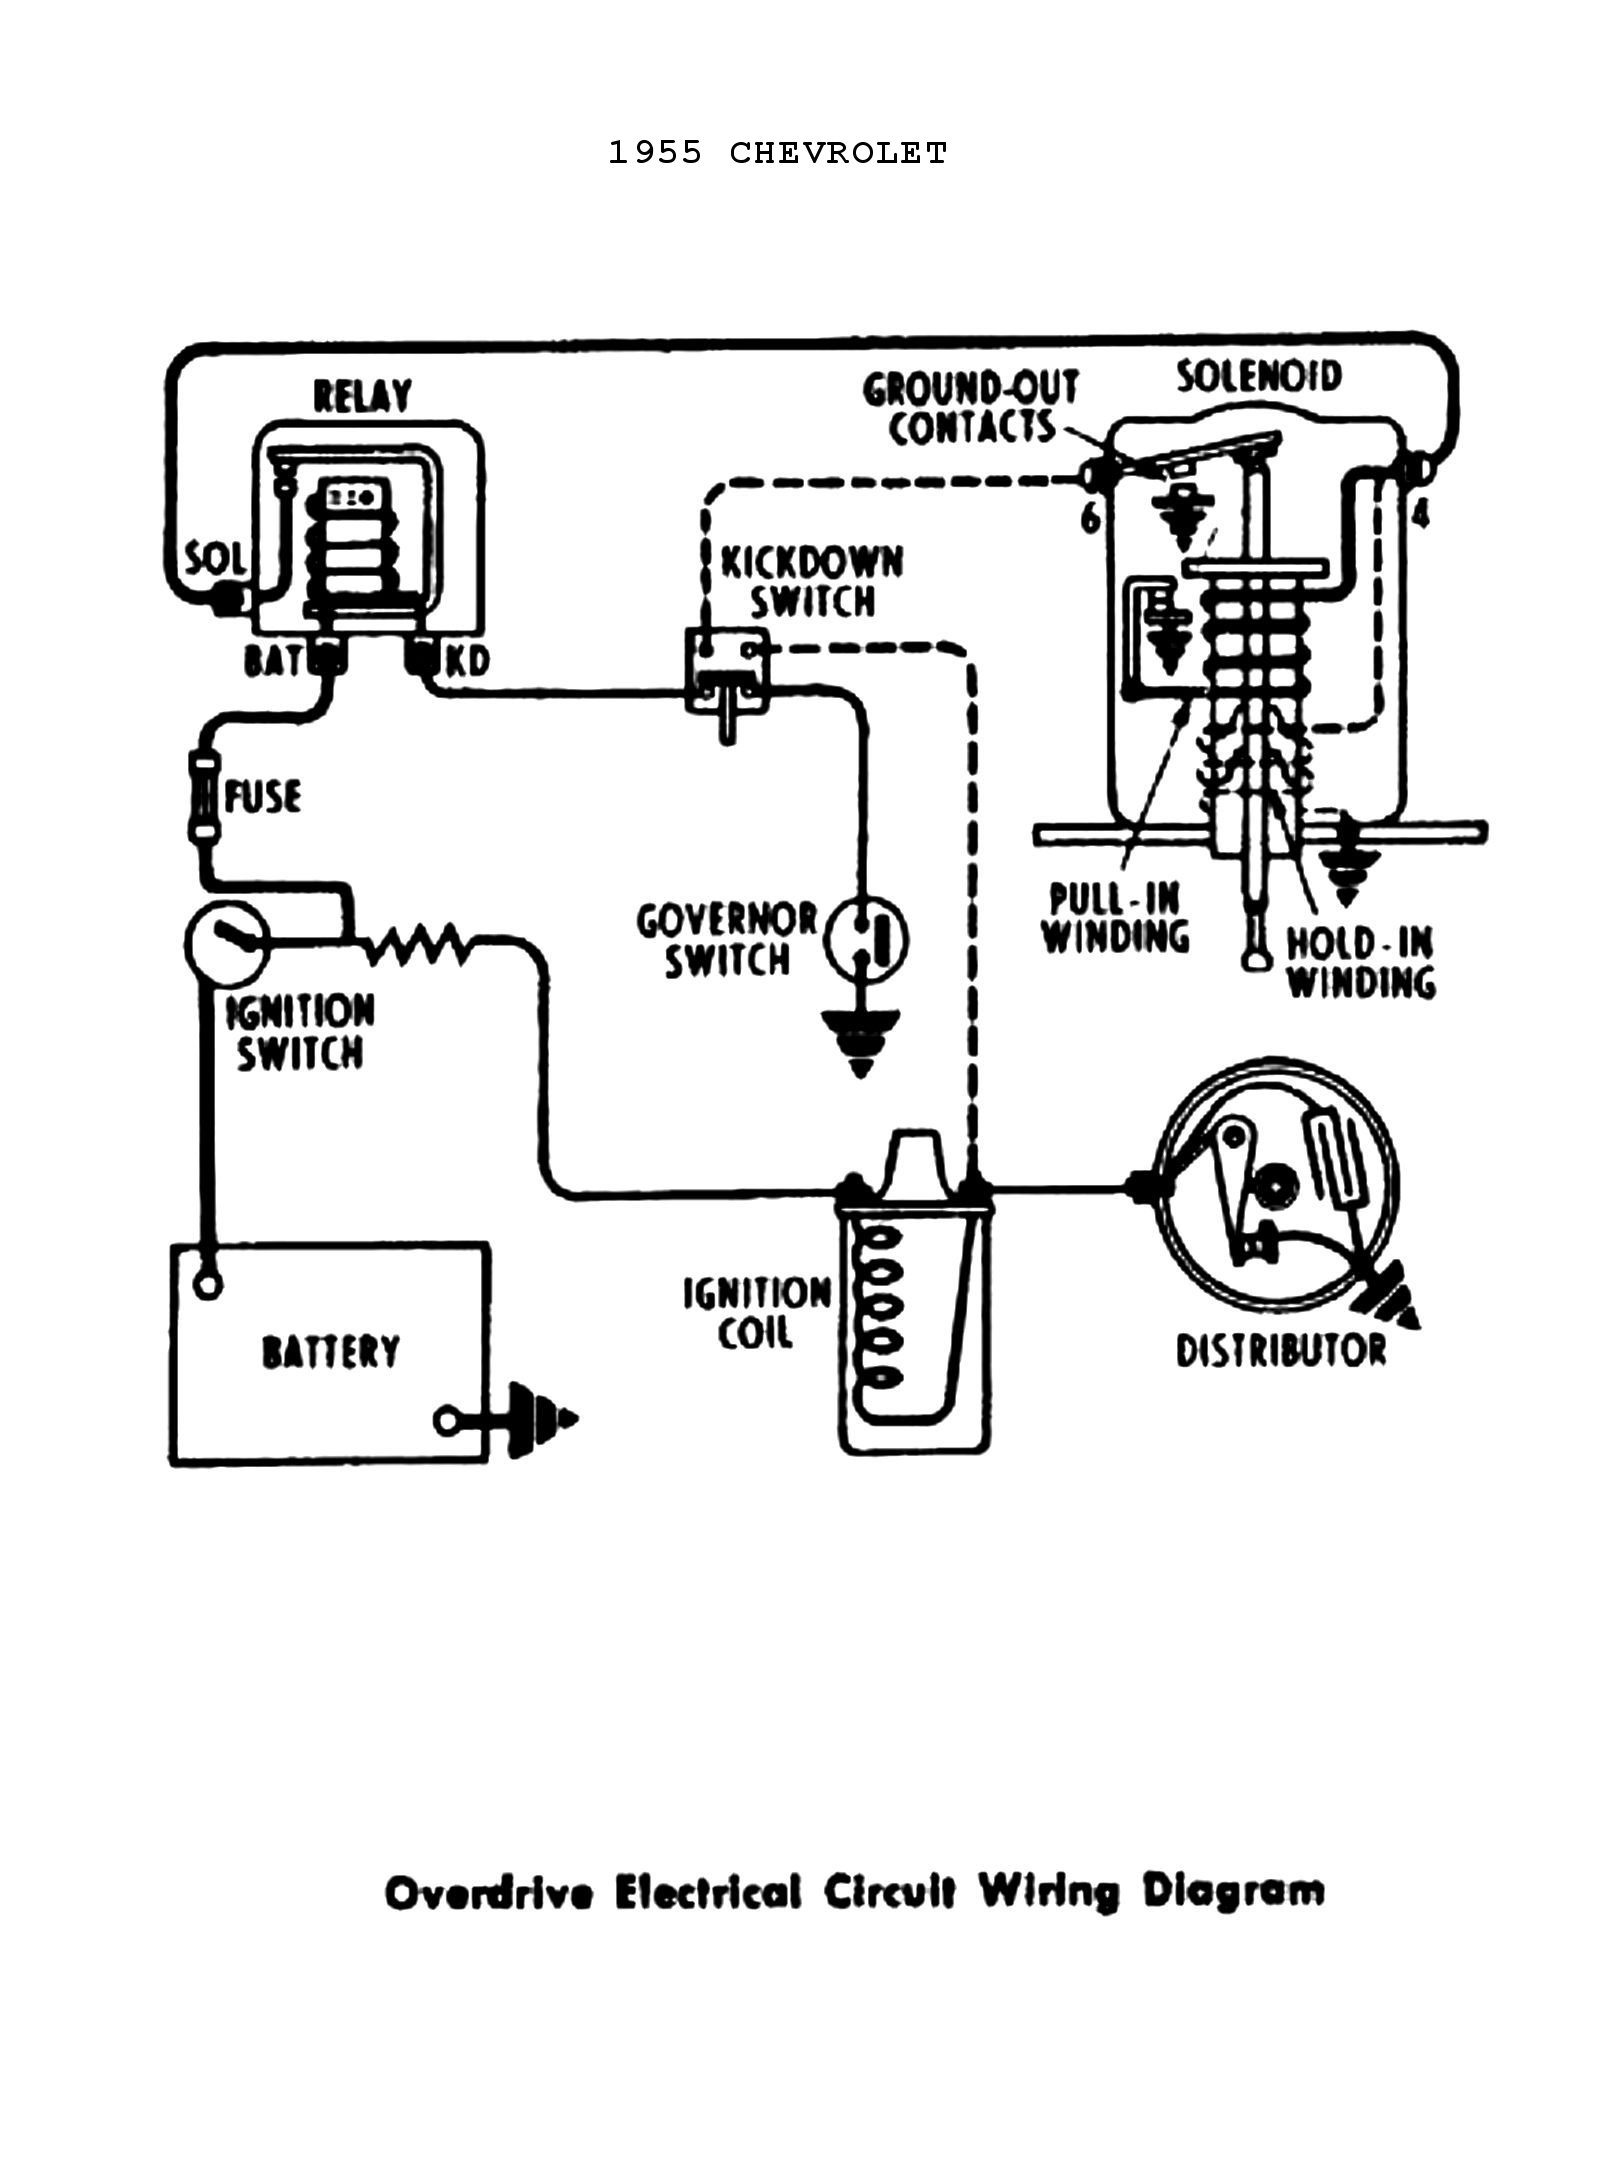 chrysler ignition wiring diagram wiring diagram